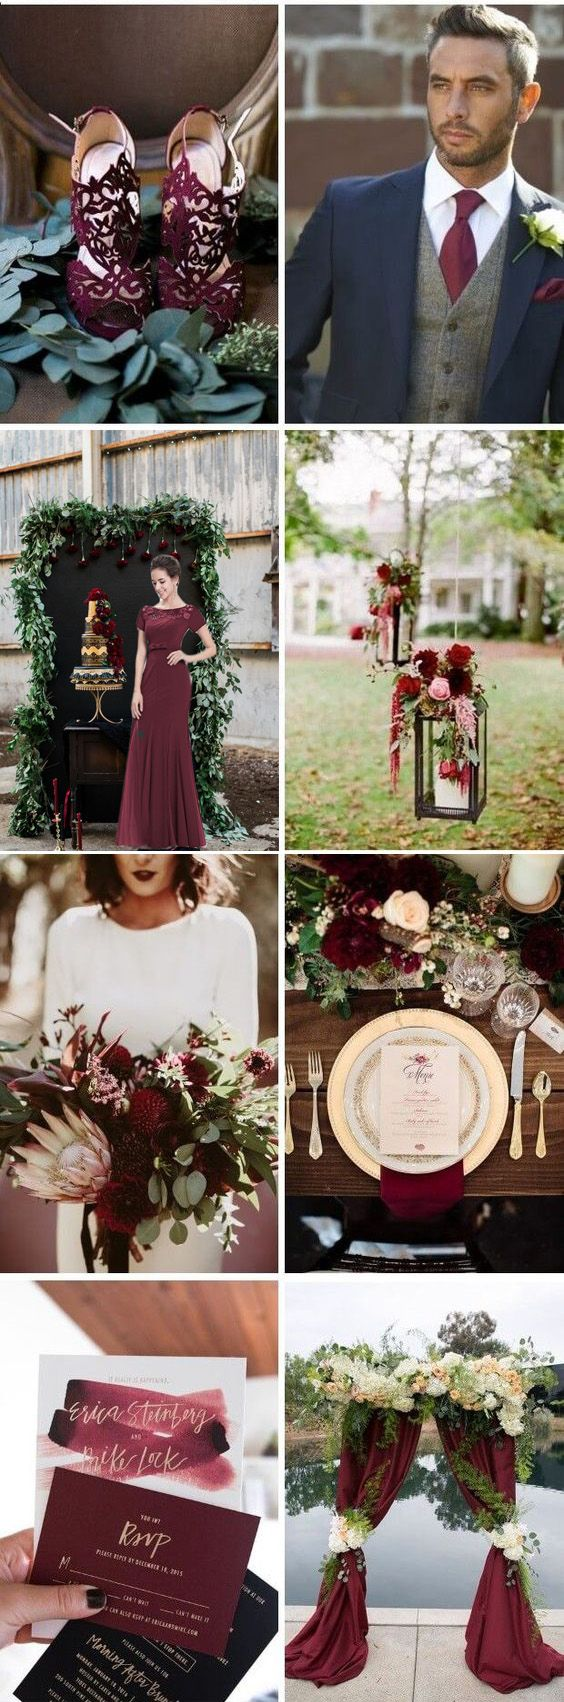 mermaid bridesmaid dresses, burgundy bridesmaid dresses, bridesmaid dress with bowknot, long bridesmaid dresses, short sleeves bridesmaid dresses